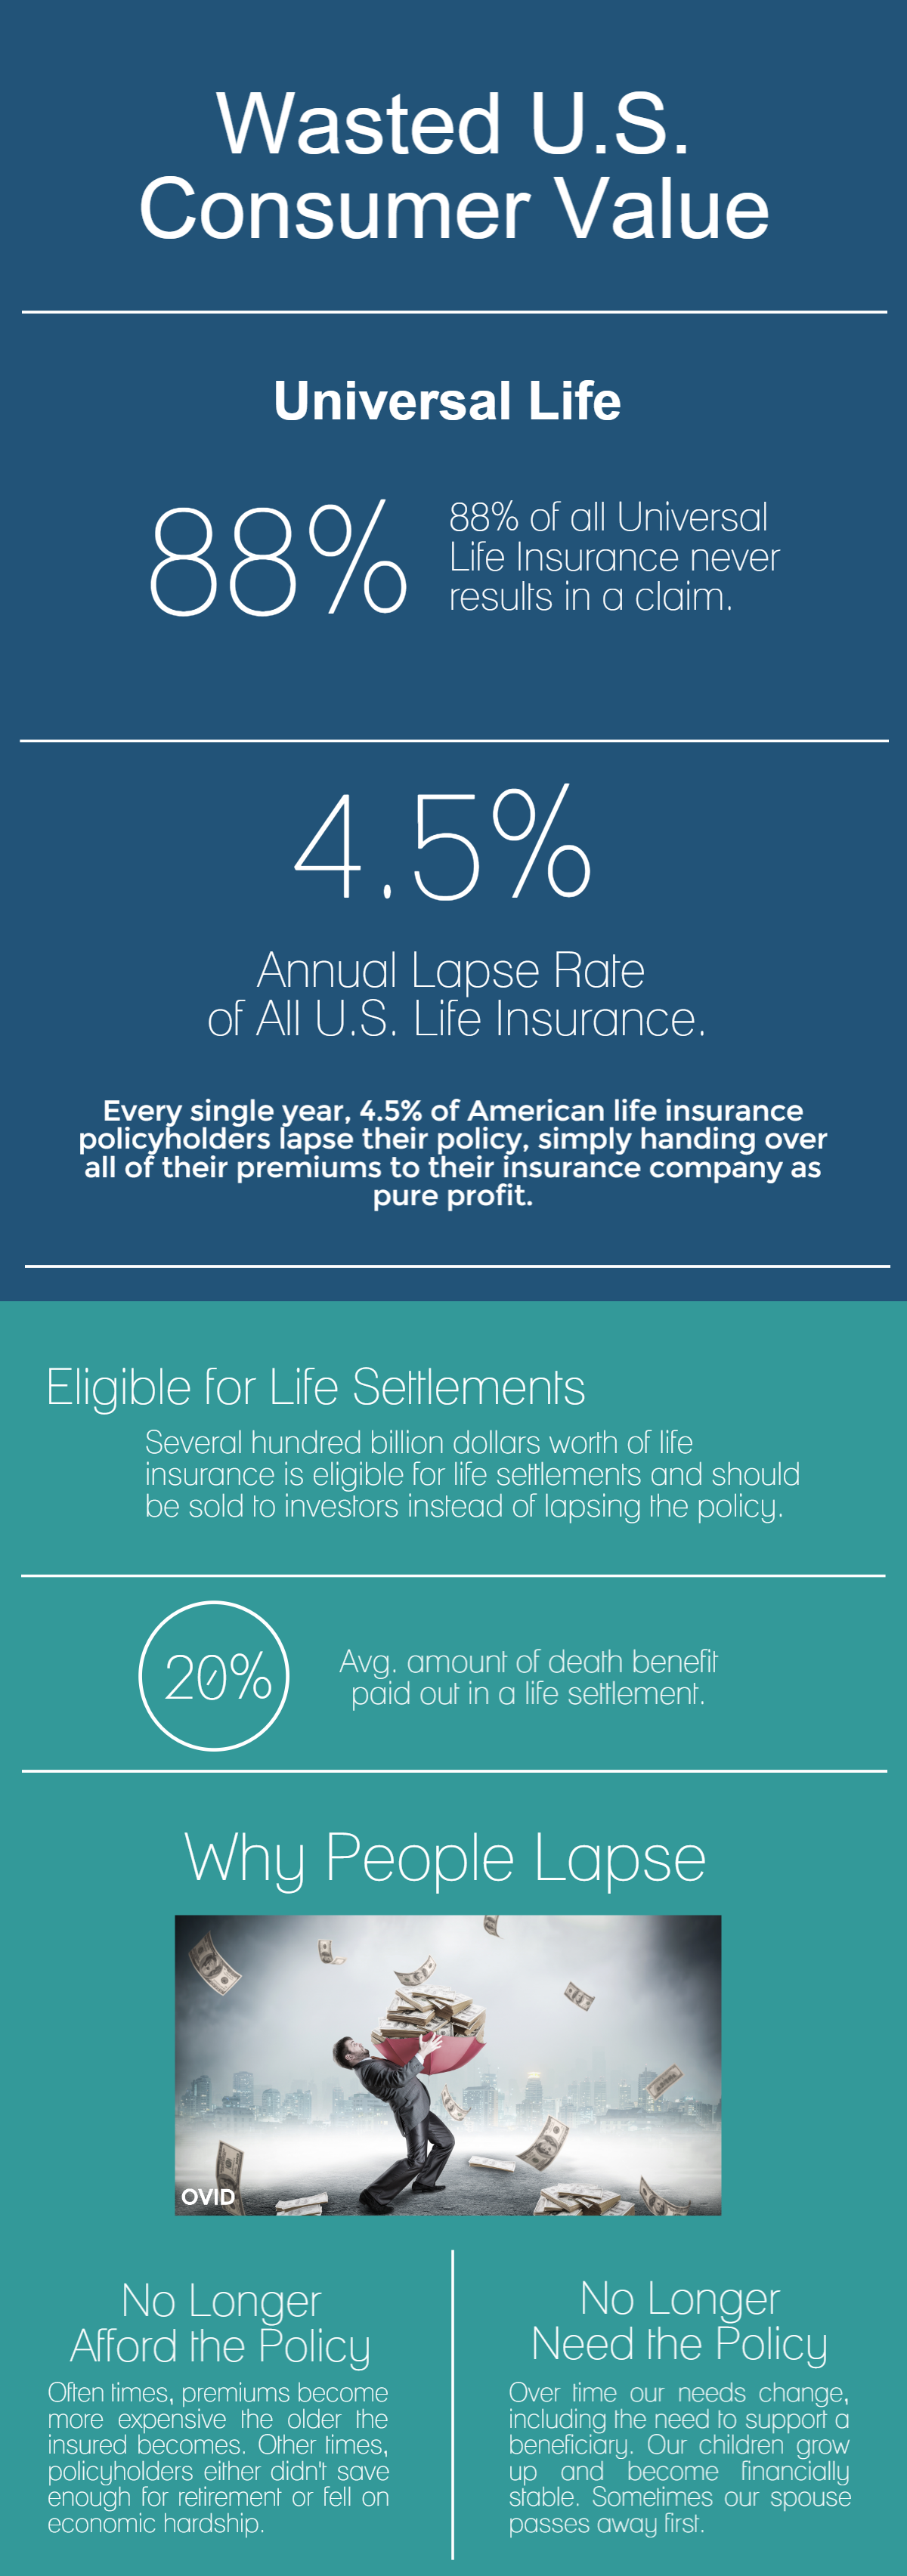 Lapsed Life Insurance: The Wasted U.S. Consumer Value ...